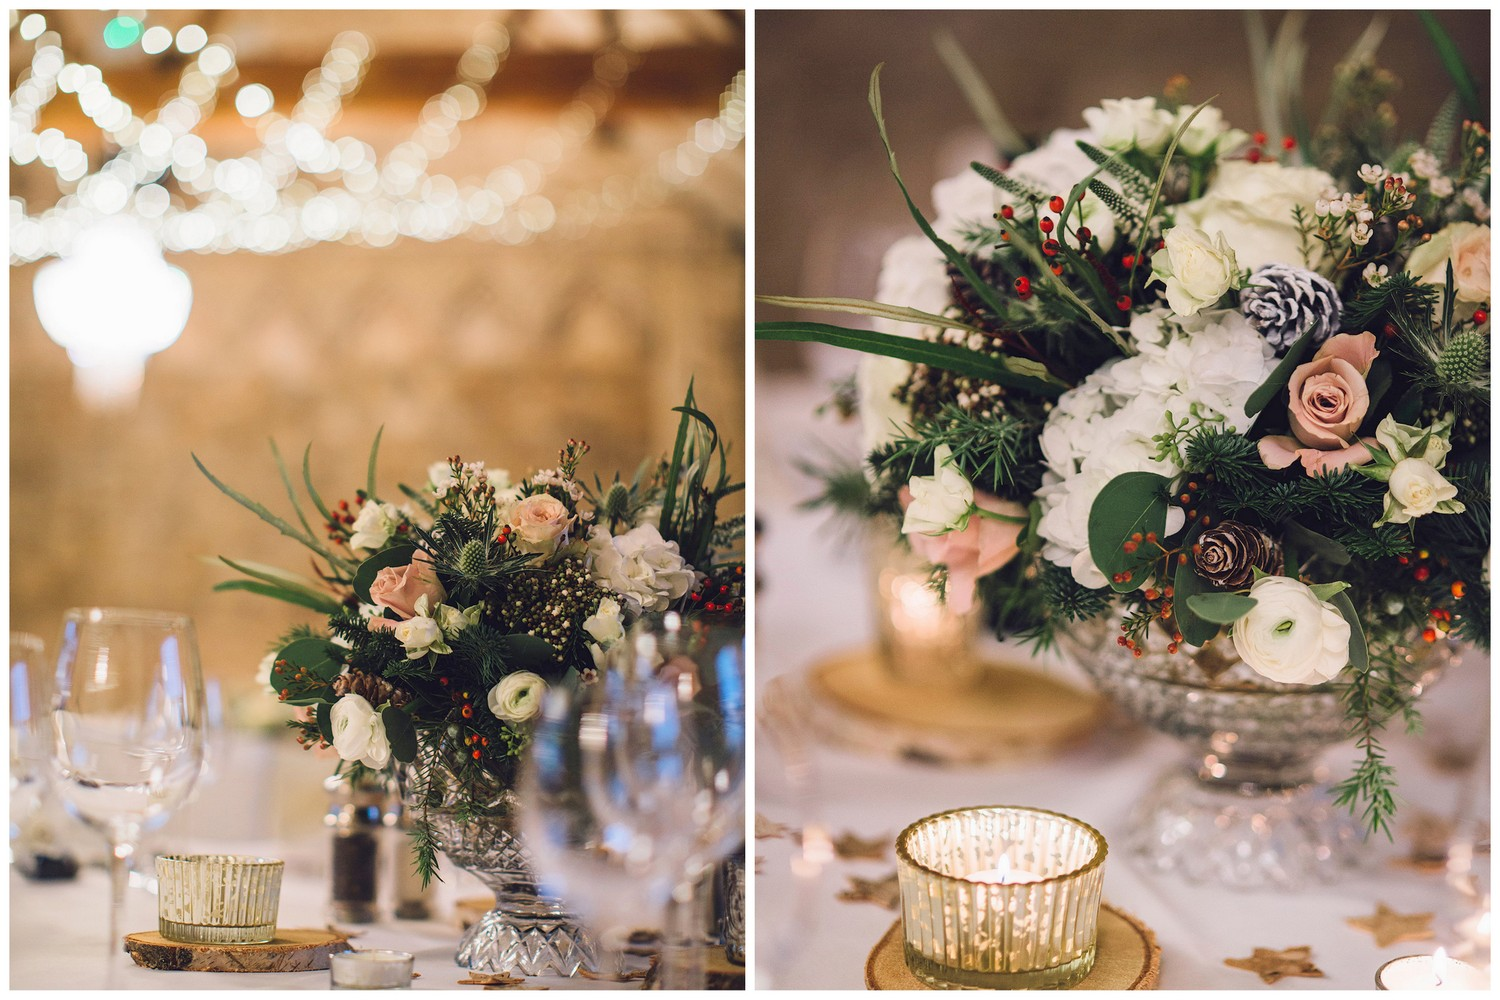 White & Blush Table Centres for a winter wedding